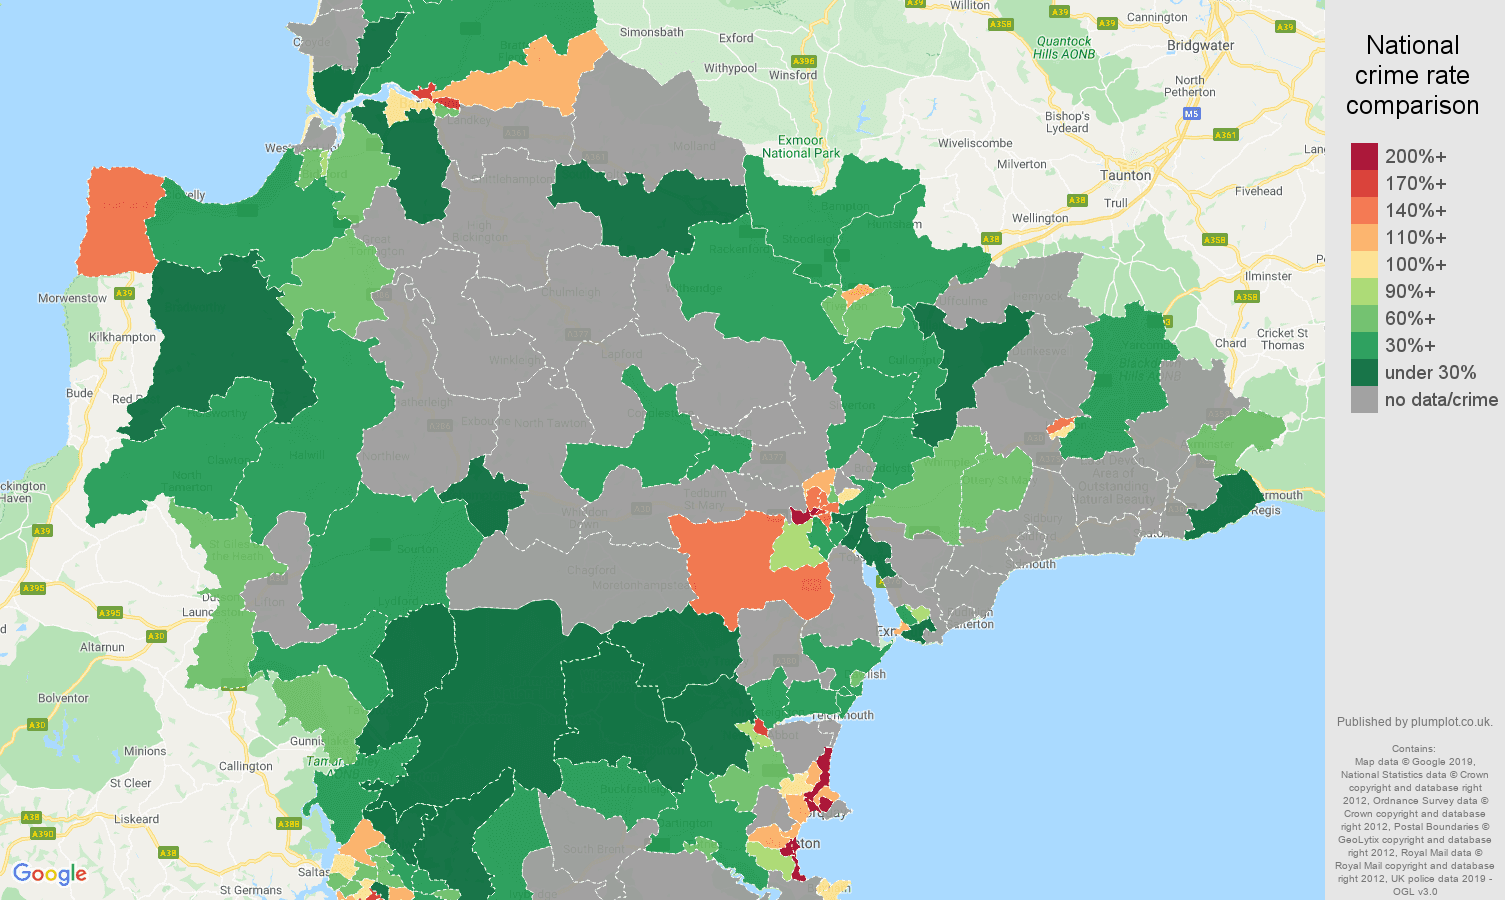 Devon possession of weapons crime rate comparison map